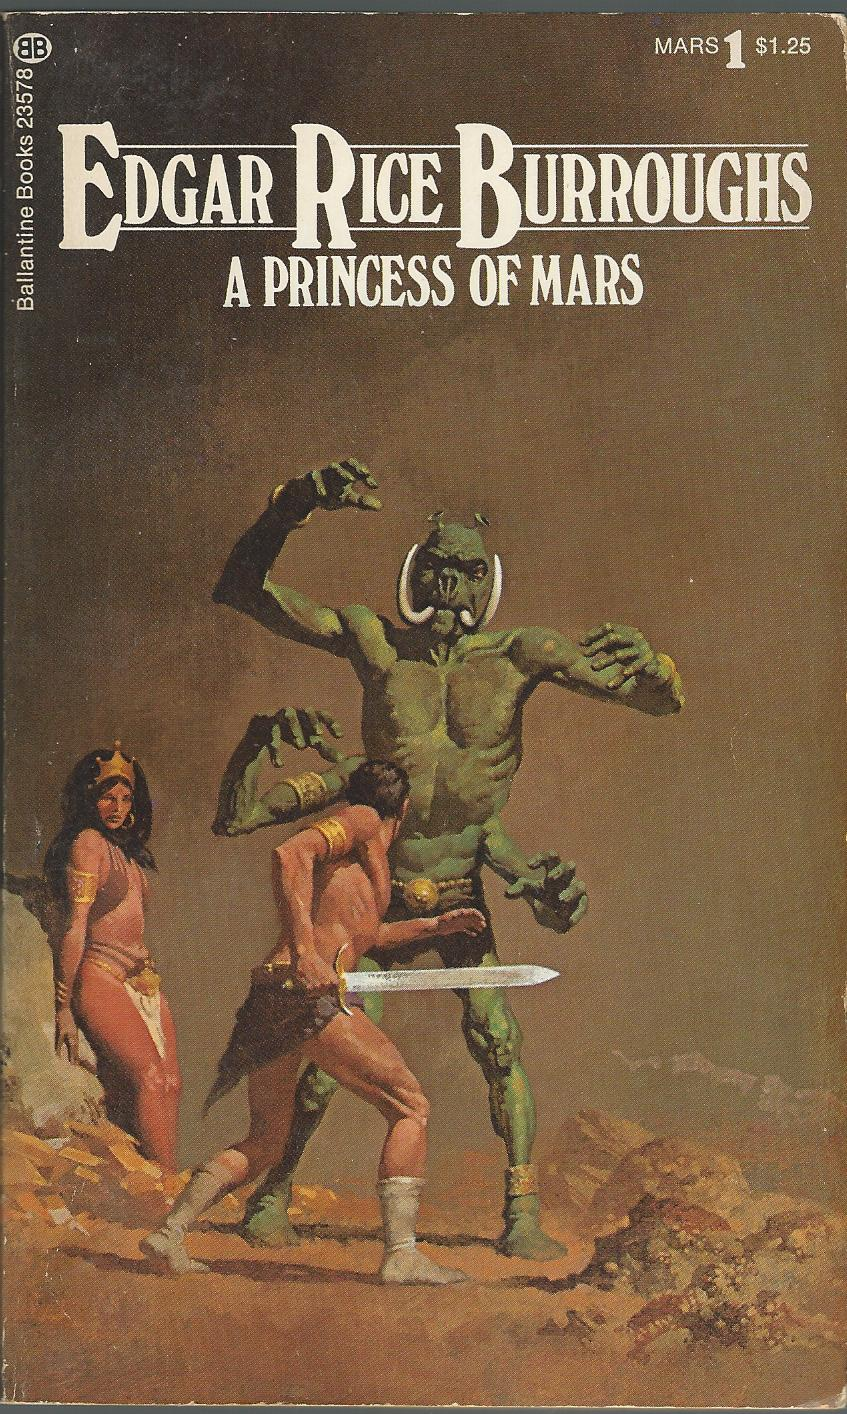 From the Dalenberg Library of Antique Popular Literature, this is the Ballantine paperback edition of A Princess of Mars that I cut my teeth on in my science fictional formative years.The Mars novels were reprinted in 11 volumes starting in 1963. These covers (from the mid-1970's printings) by Gino D'Achille have always been my favorite complete series of the novels. The movie John Carter borrows a bit of its look from these particular paperback covers.